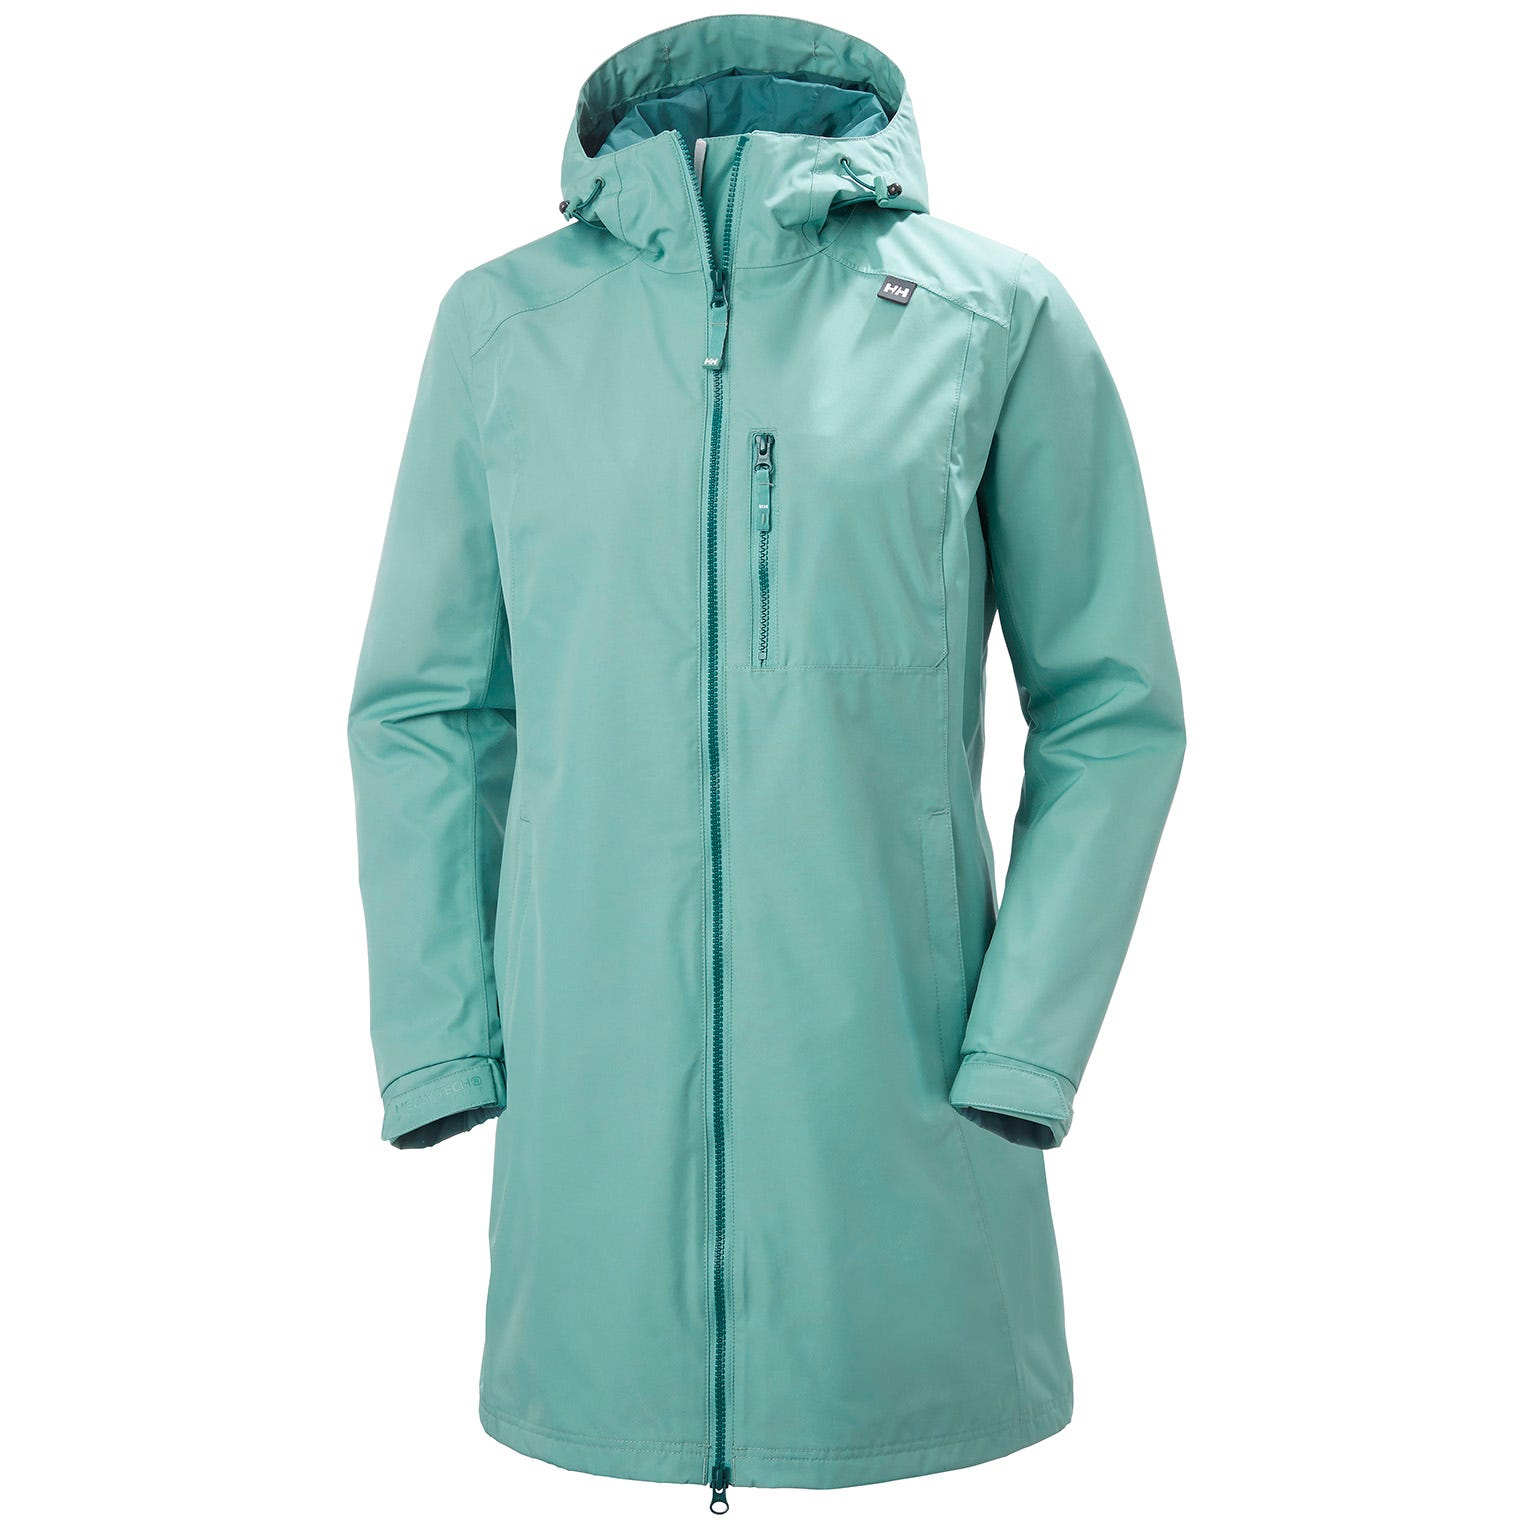 Helly Hansen Womens Rain Jacket Blue XS